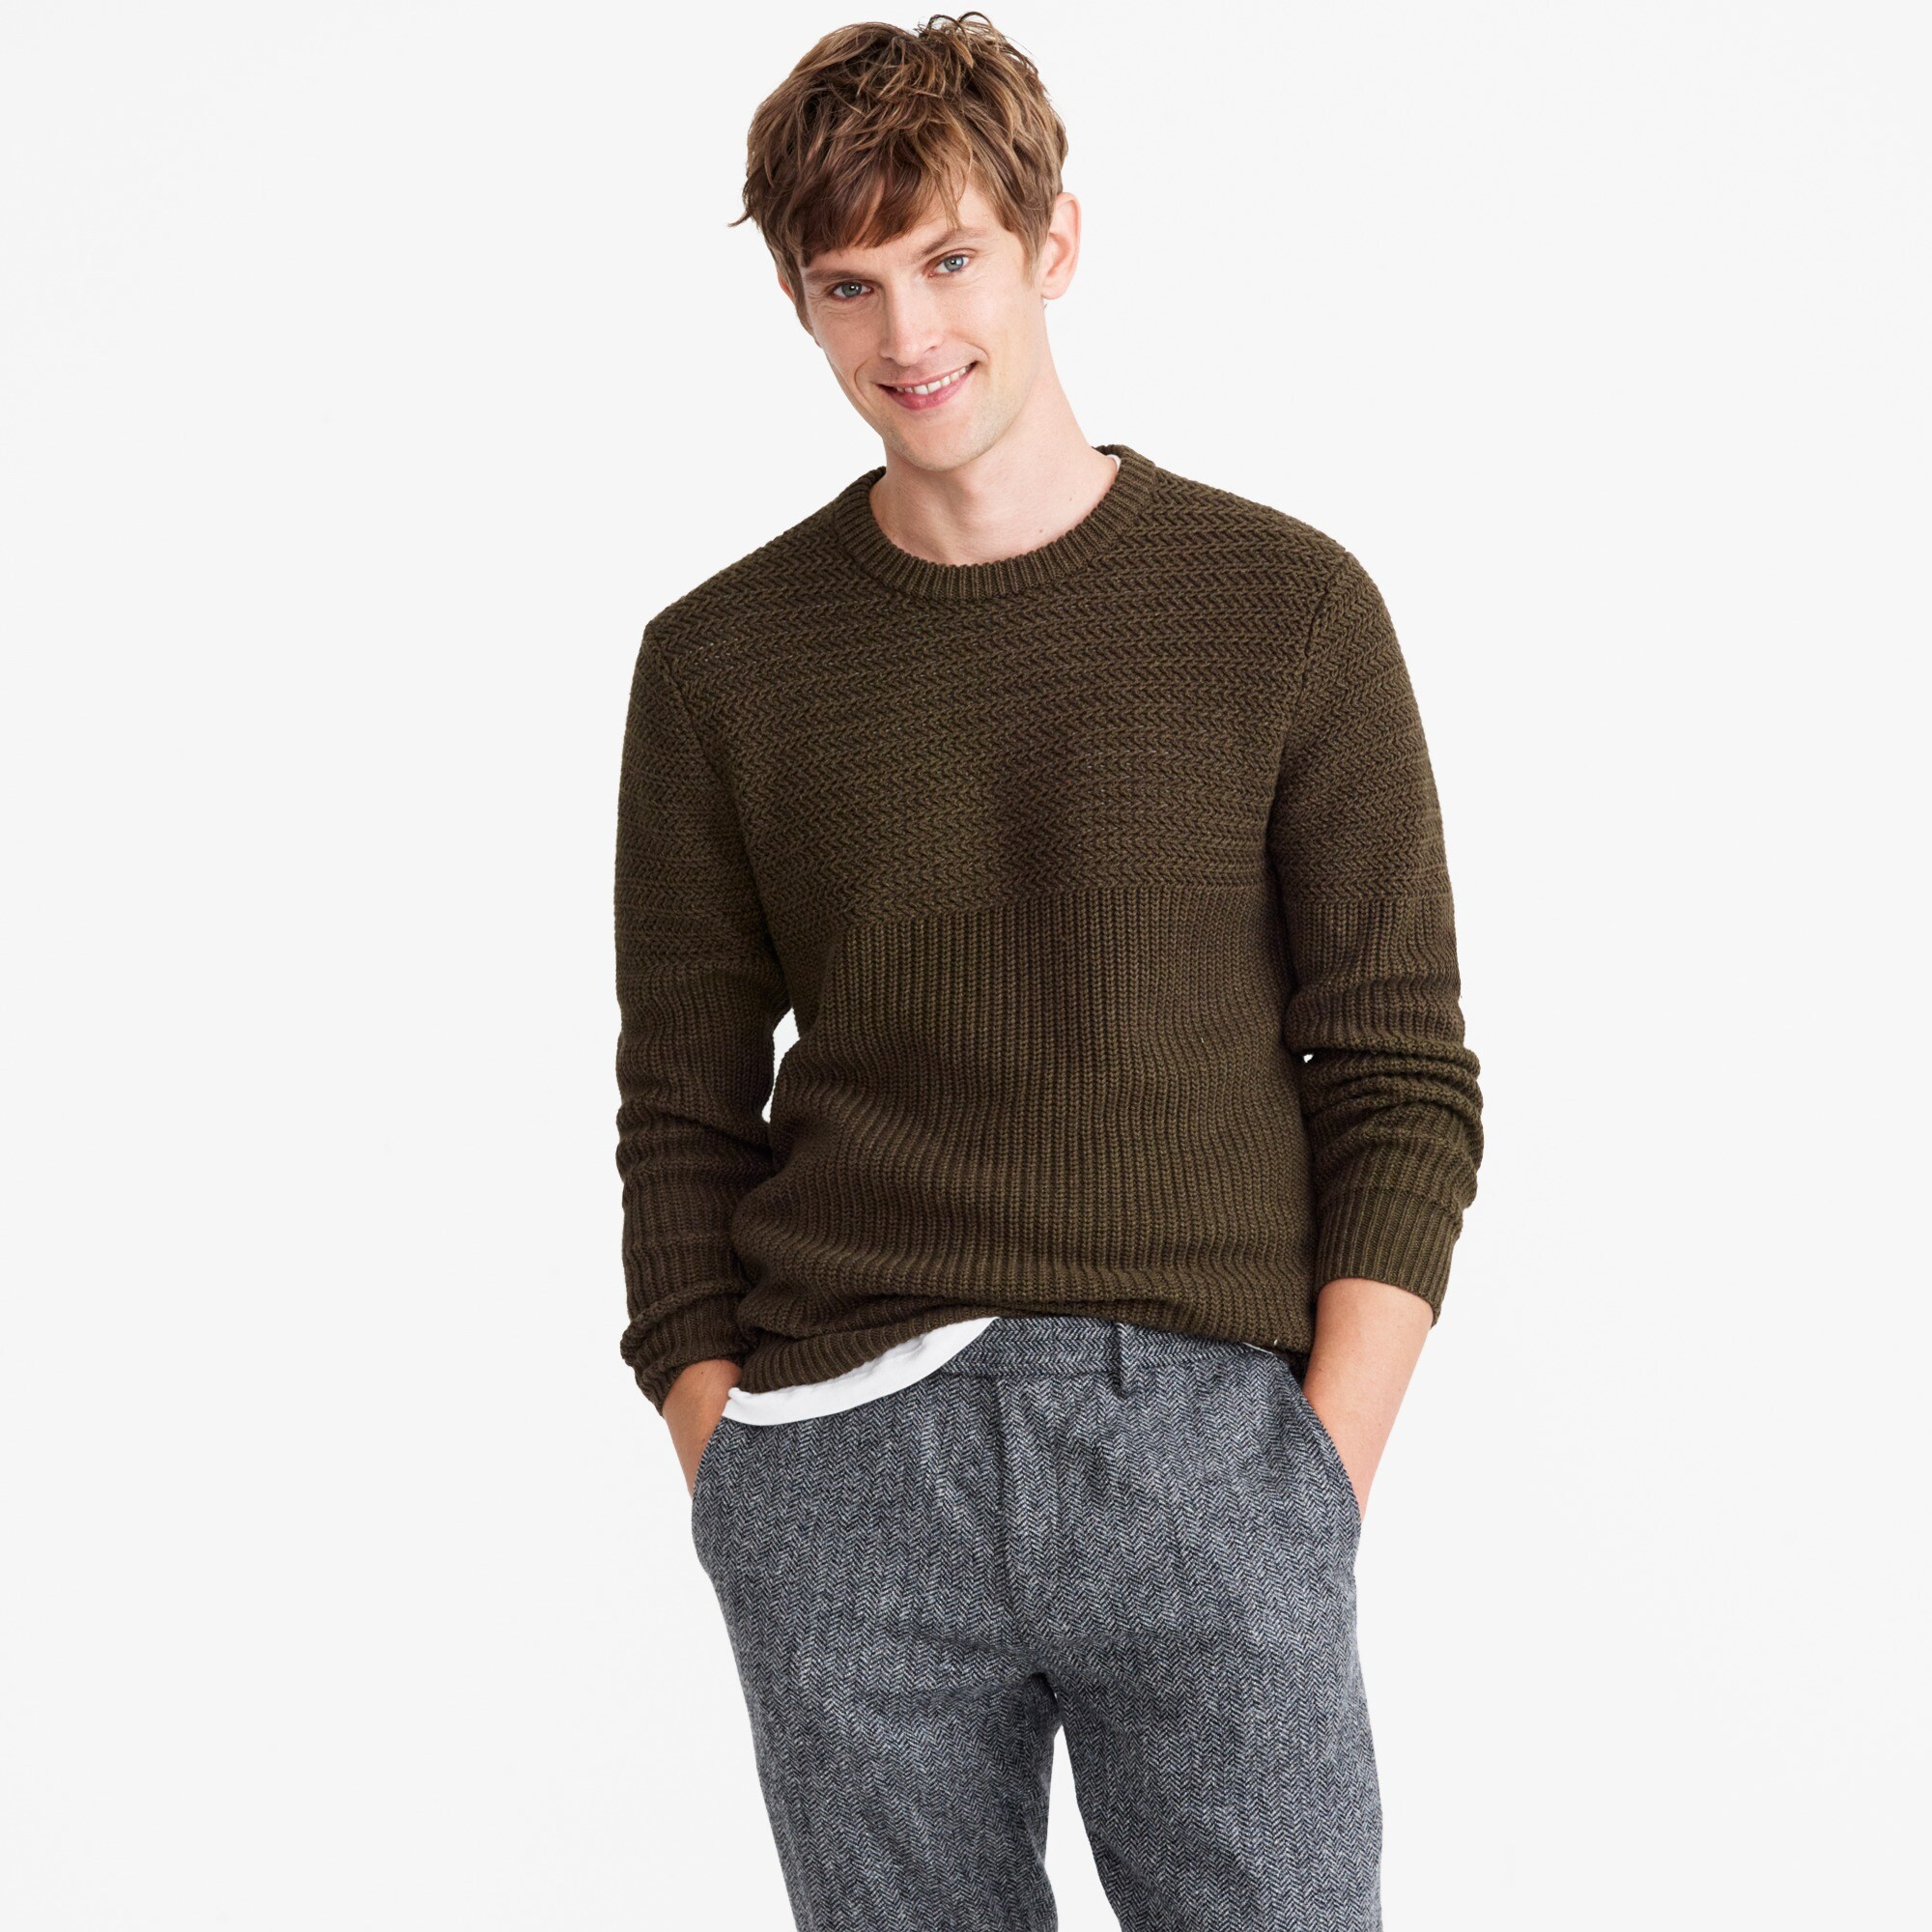 Half-ribbed cotton crewneck sweater